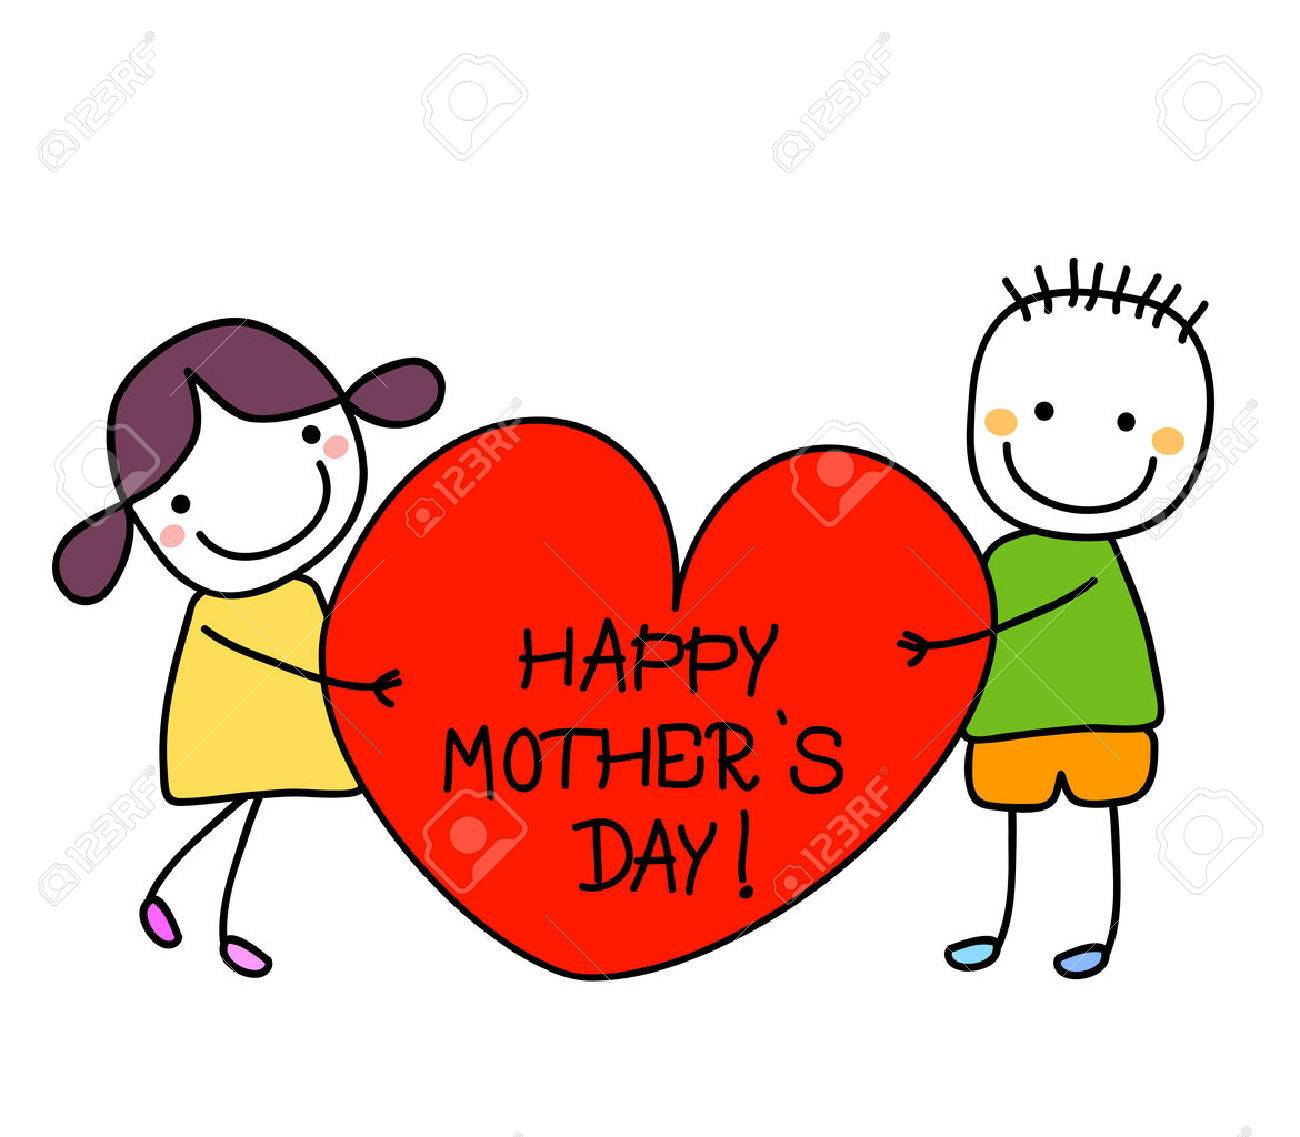 happy mothers day - 40864882